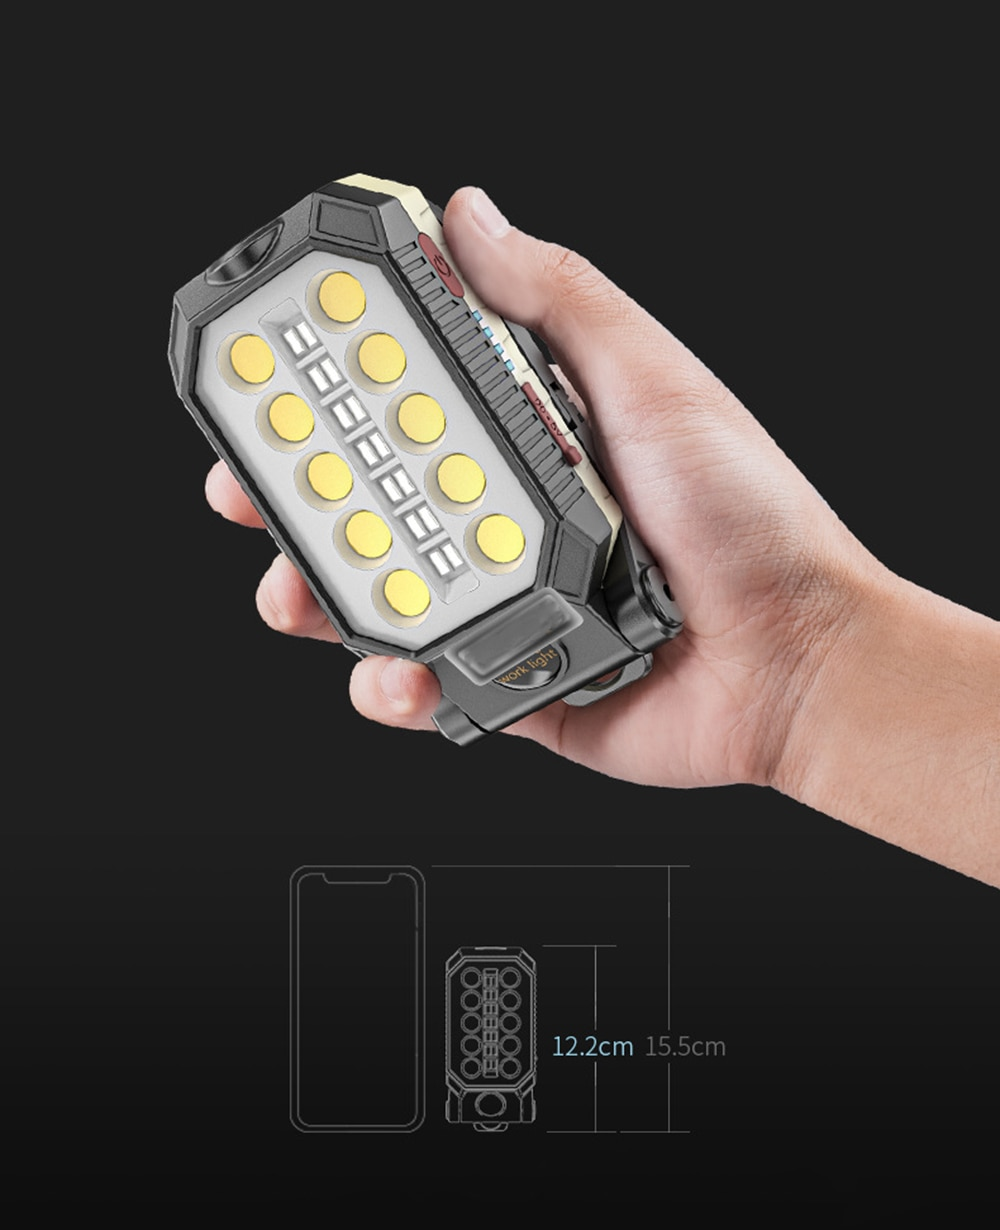 H9cea28ebf52b4f00991258db95f1a9ca7 - USB Rechargeable COB Work Light Portable LED Flashlight Adjustable Waterproof Camping Lantern Magnet Design with Power Display